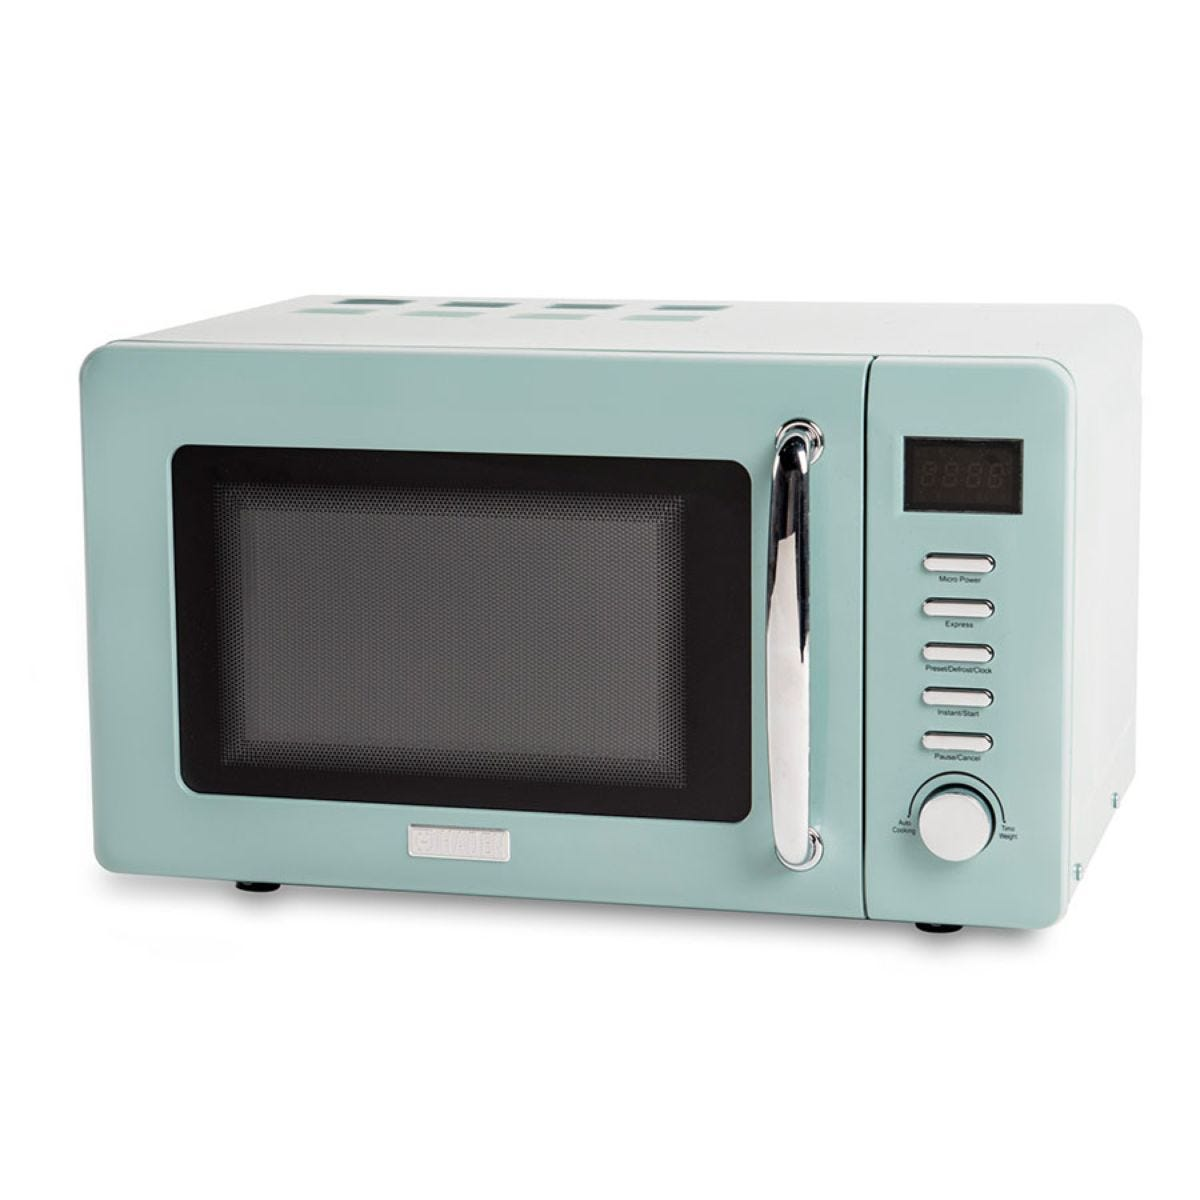 Haden 186683 Cotswold 800W 20L Microwave – Sage